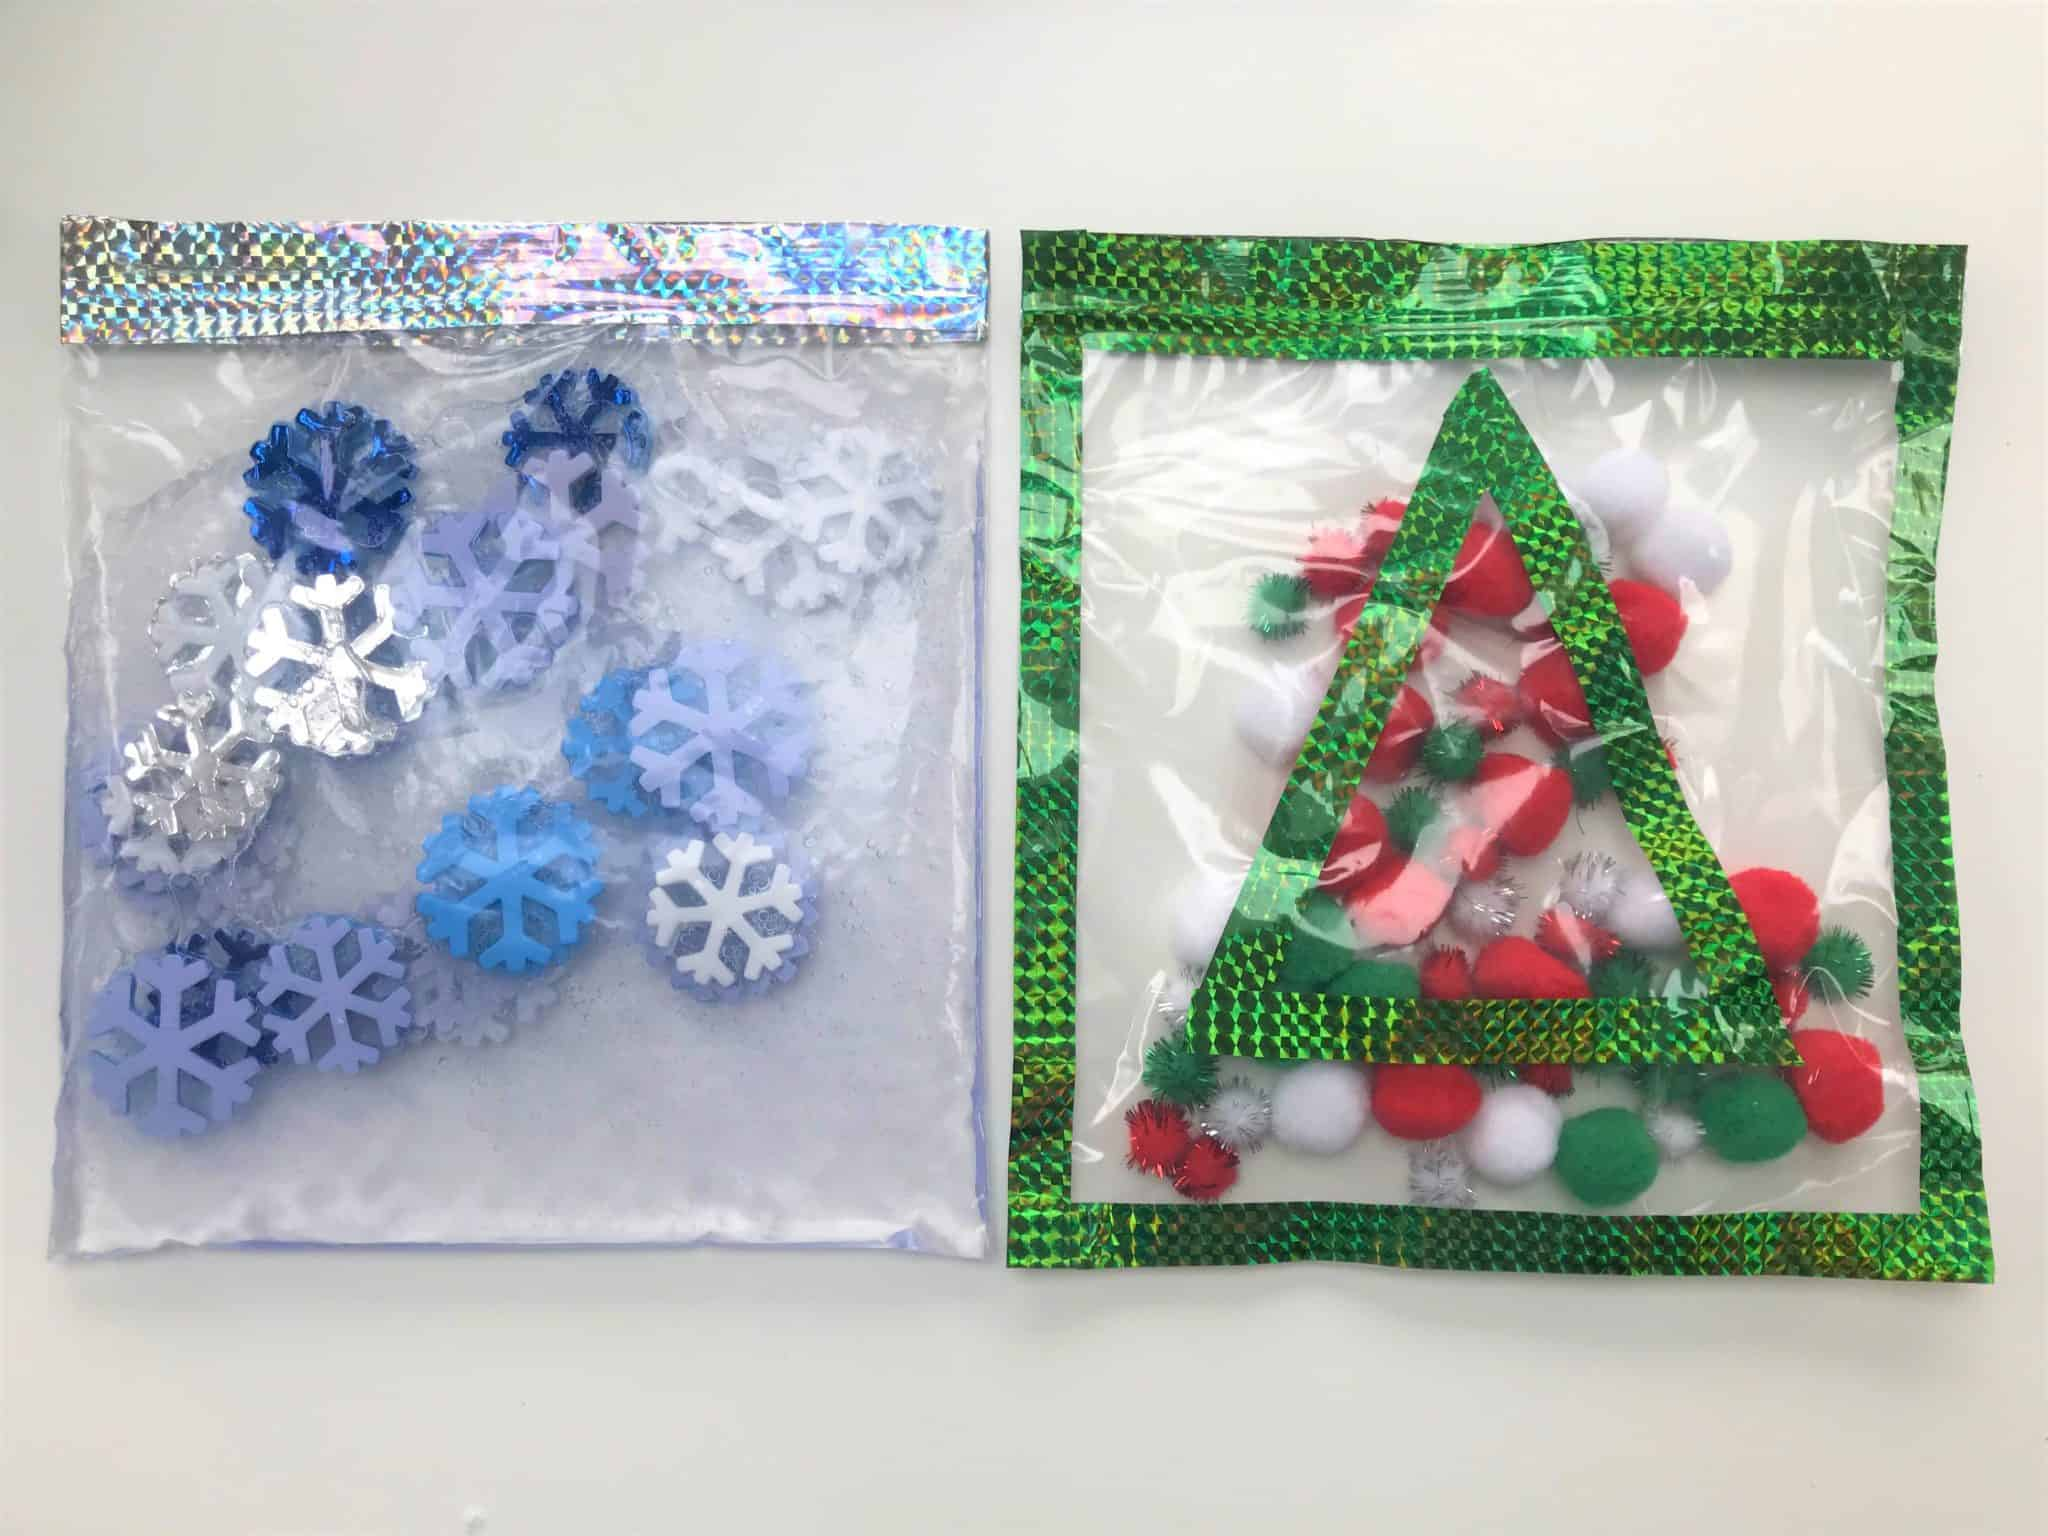 Two holiday themed sensory bags. Left contains blue and white snowflakes. The right features a christmas tree with pom poms